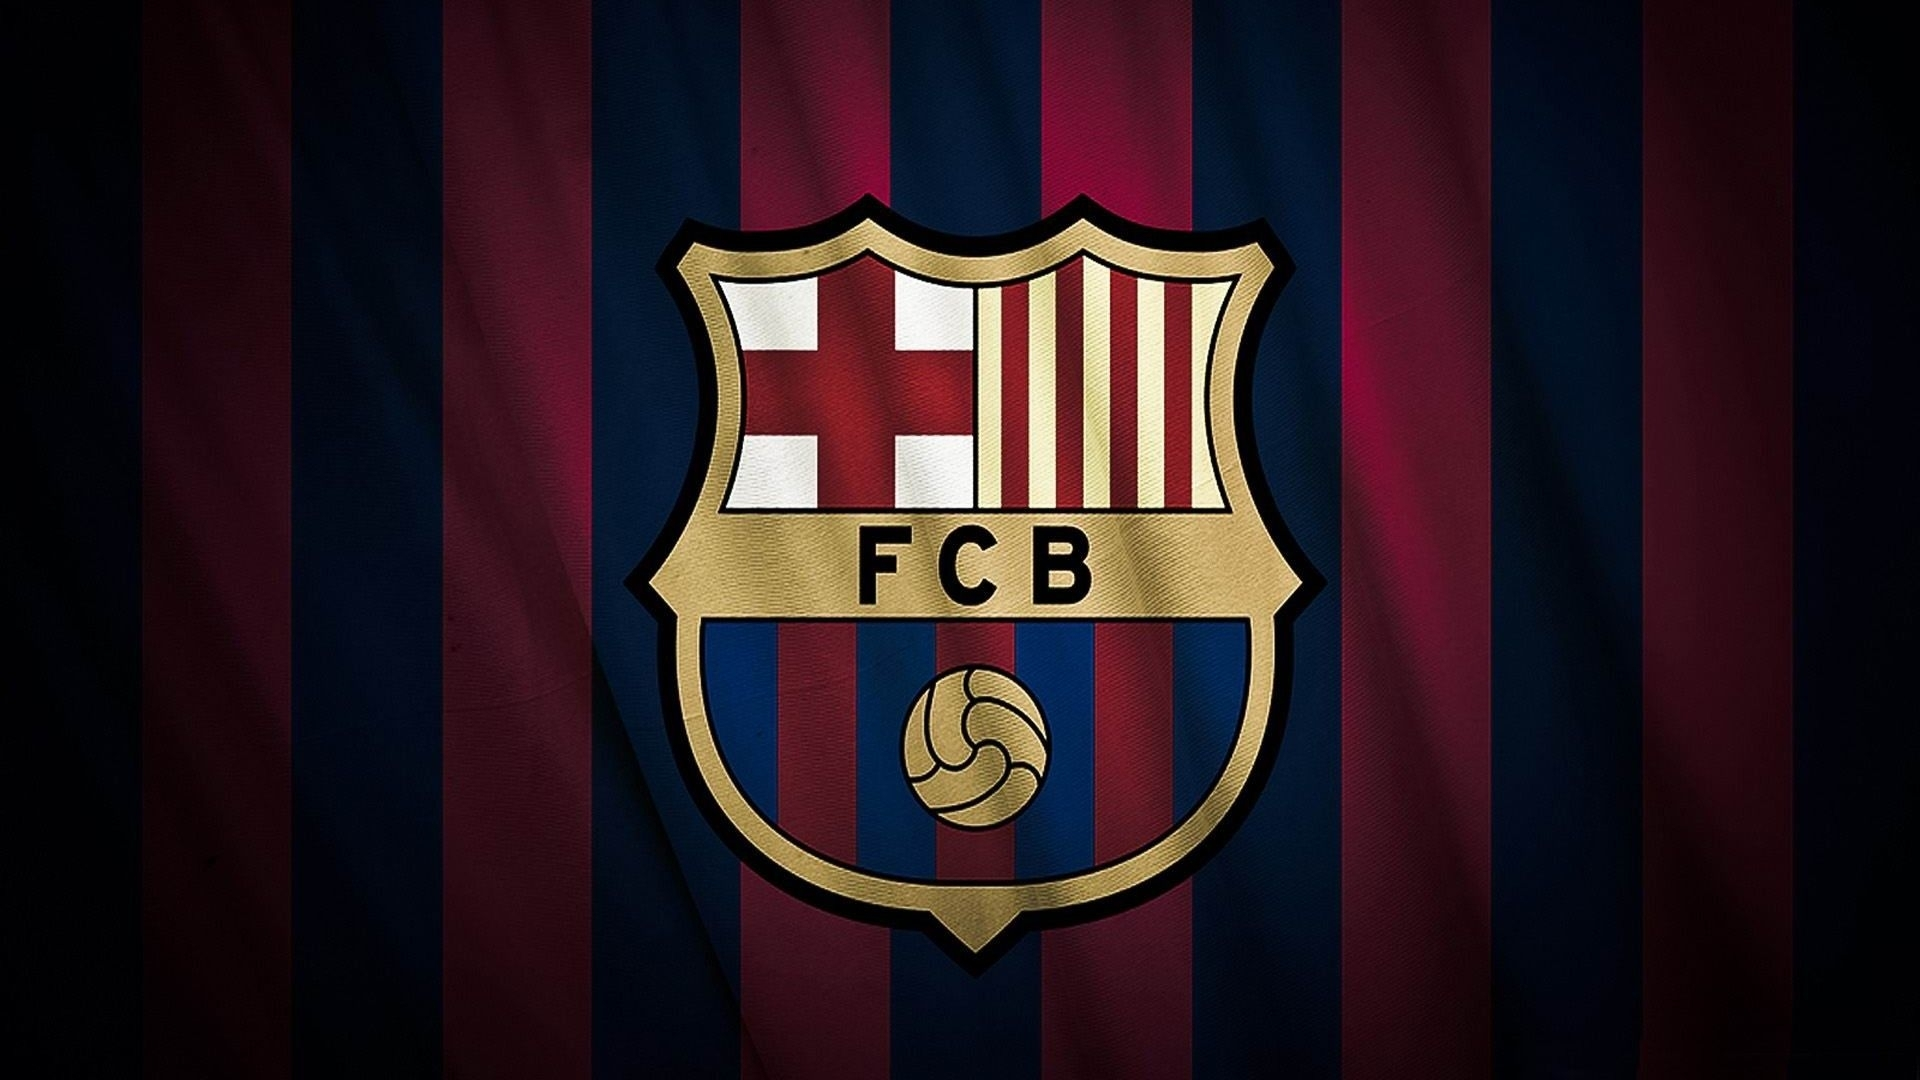 new barcelona football logo 2013 full hd wallpaper | places to visit